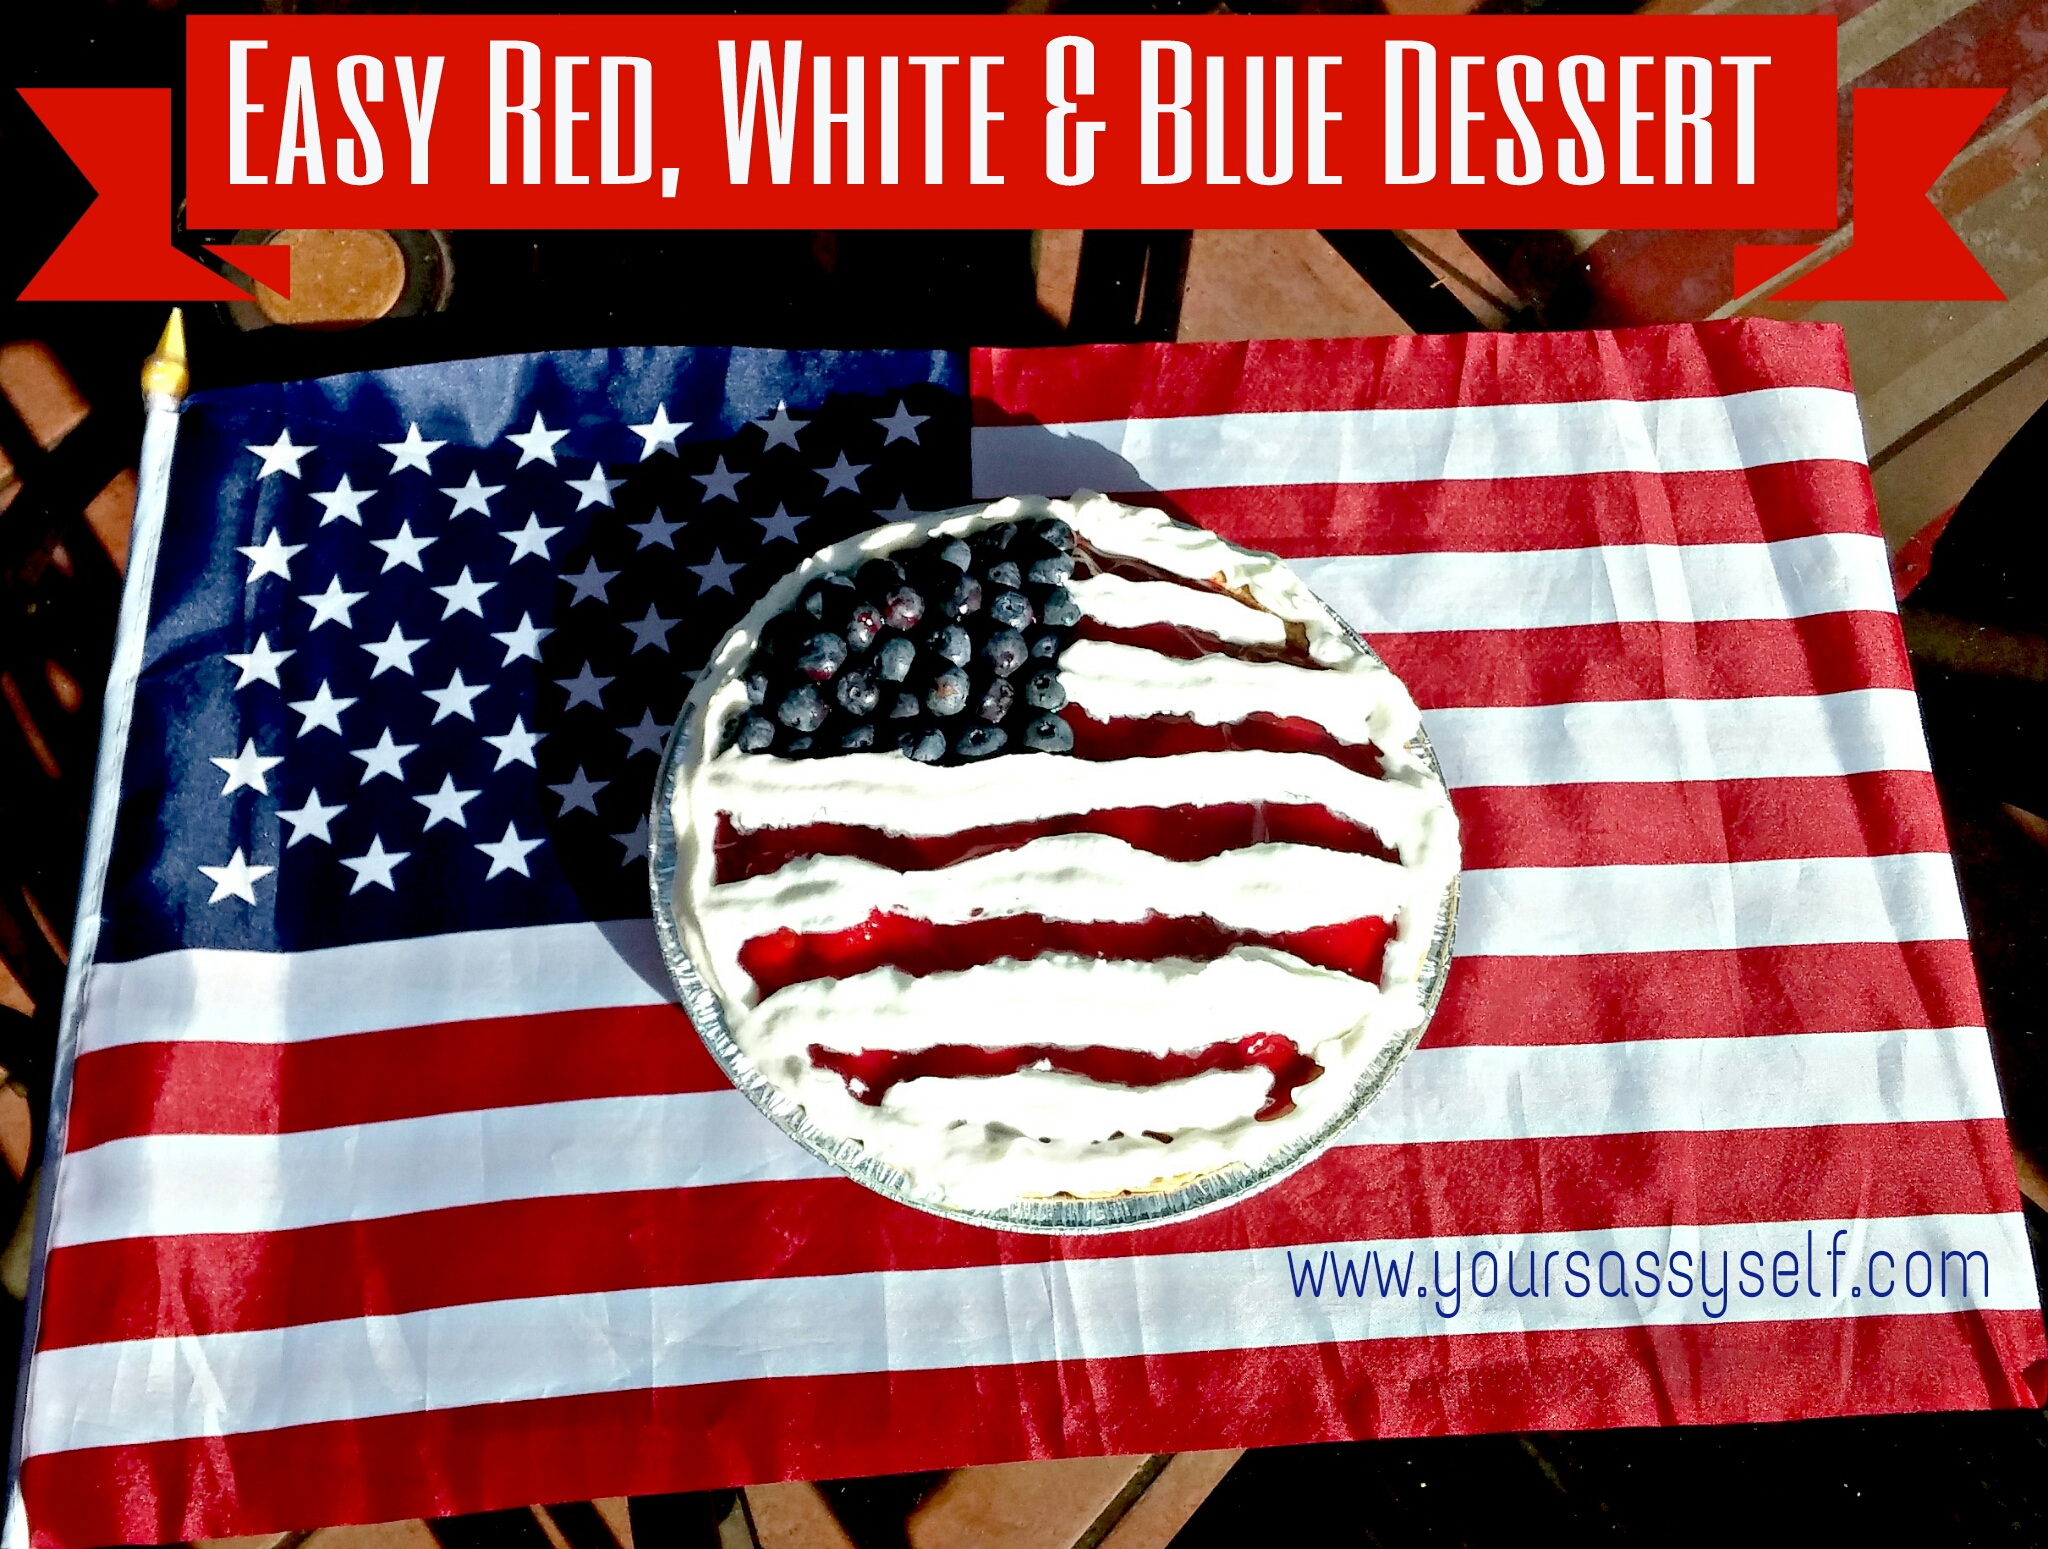 Super Easy Red White and Blue Dessert for the 4th of July